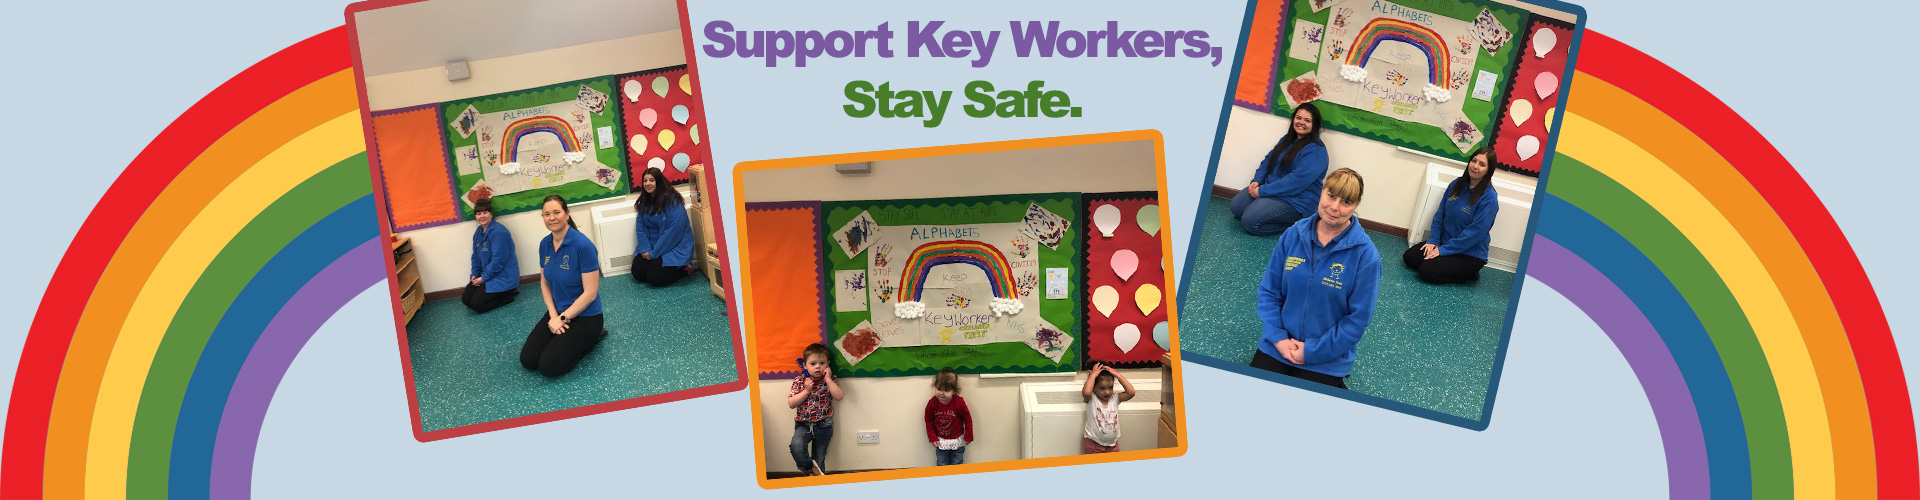 Support Key Workers, Stay Safe - Longbridge Childcare Strategy Group